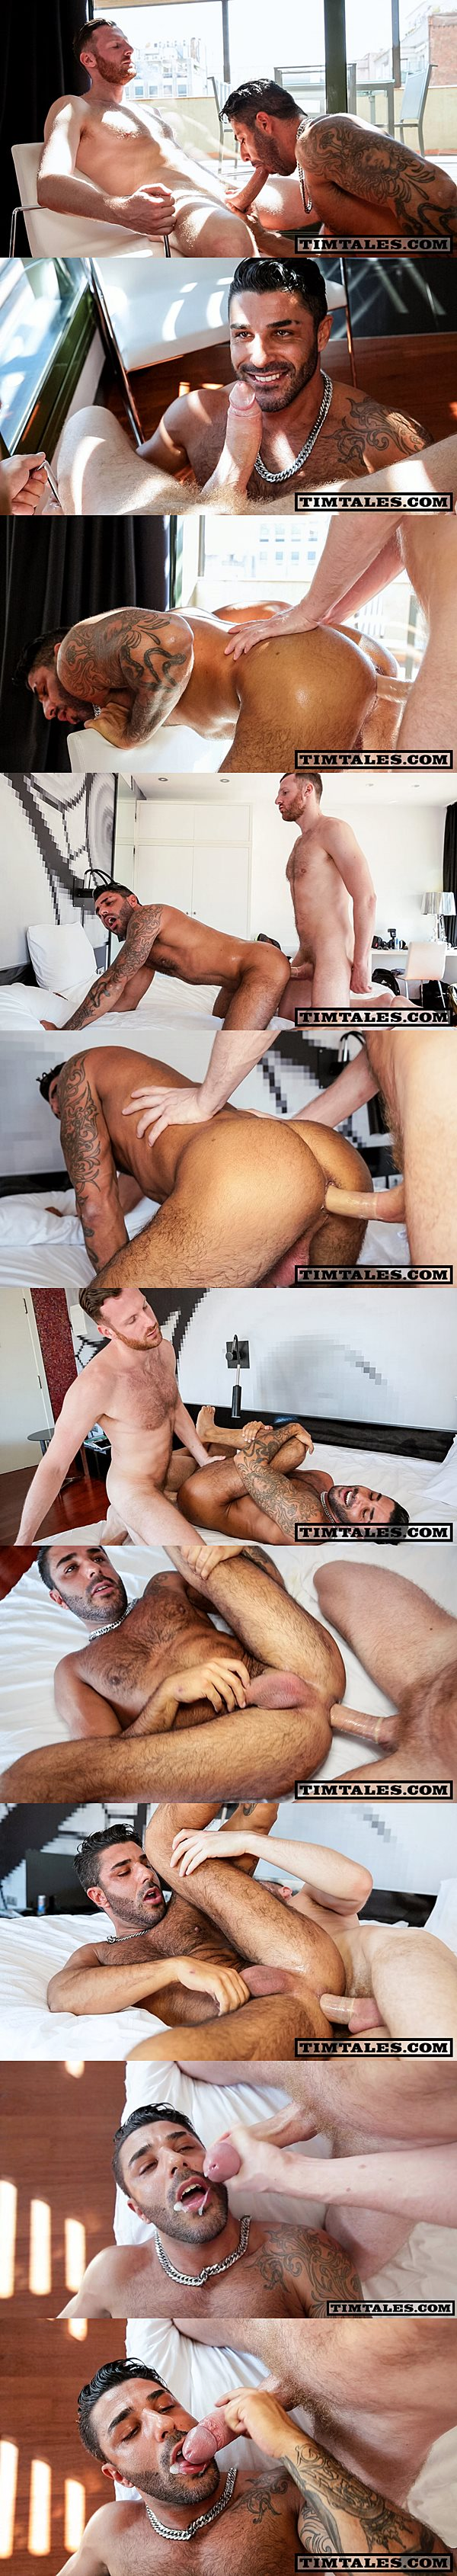 Horse hung Tim Kruger plows sexy hairy stud Raul Korso's tight ass at Timtales 02